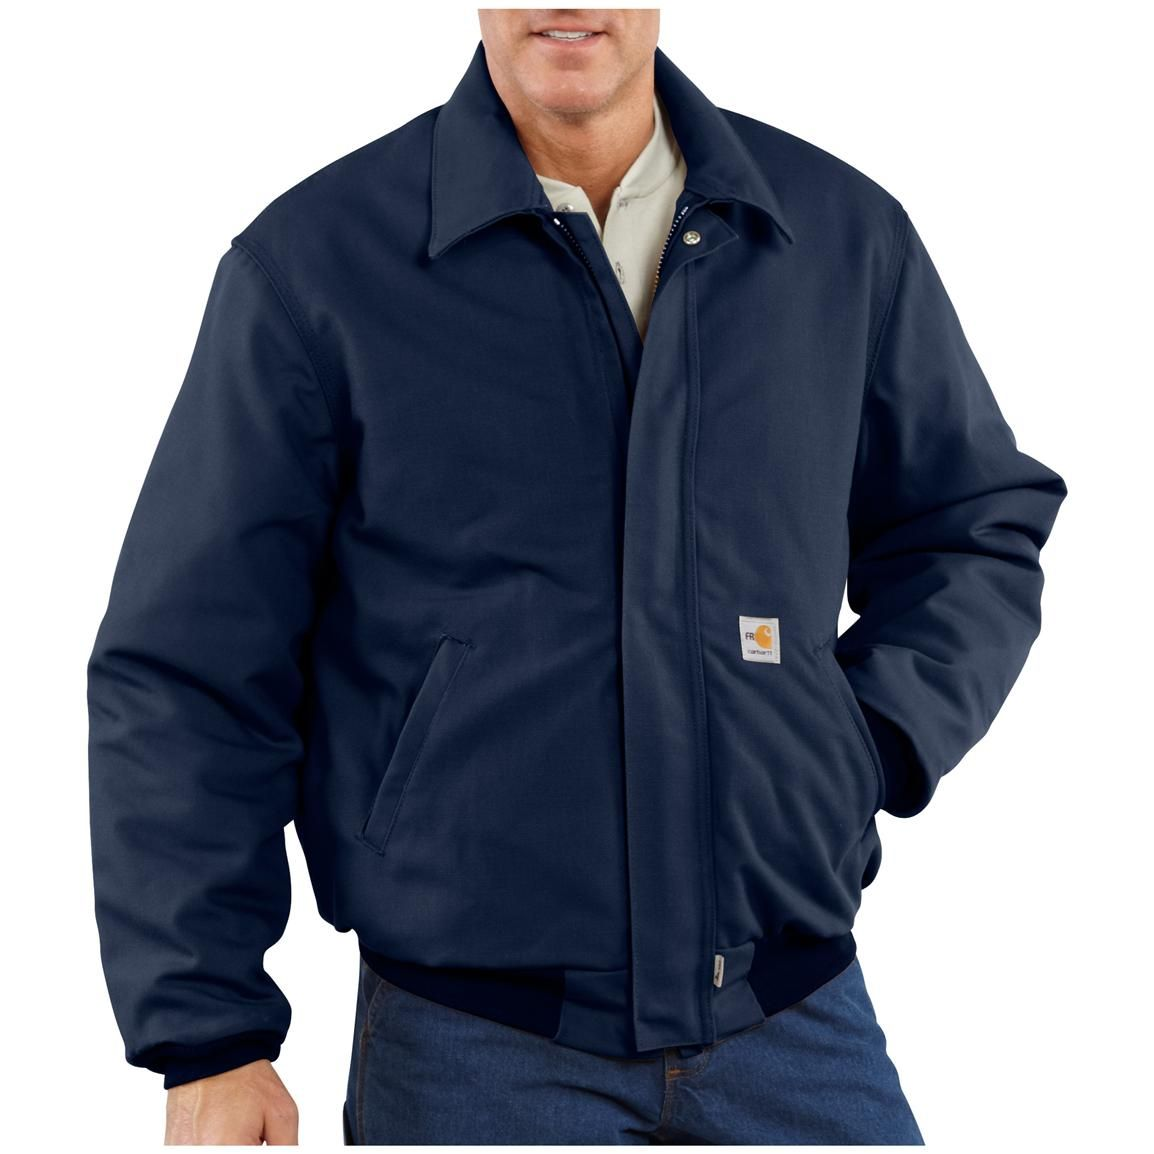 Image result for workwear jacket | workwear jacket | Pinterest ...